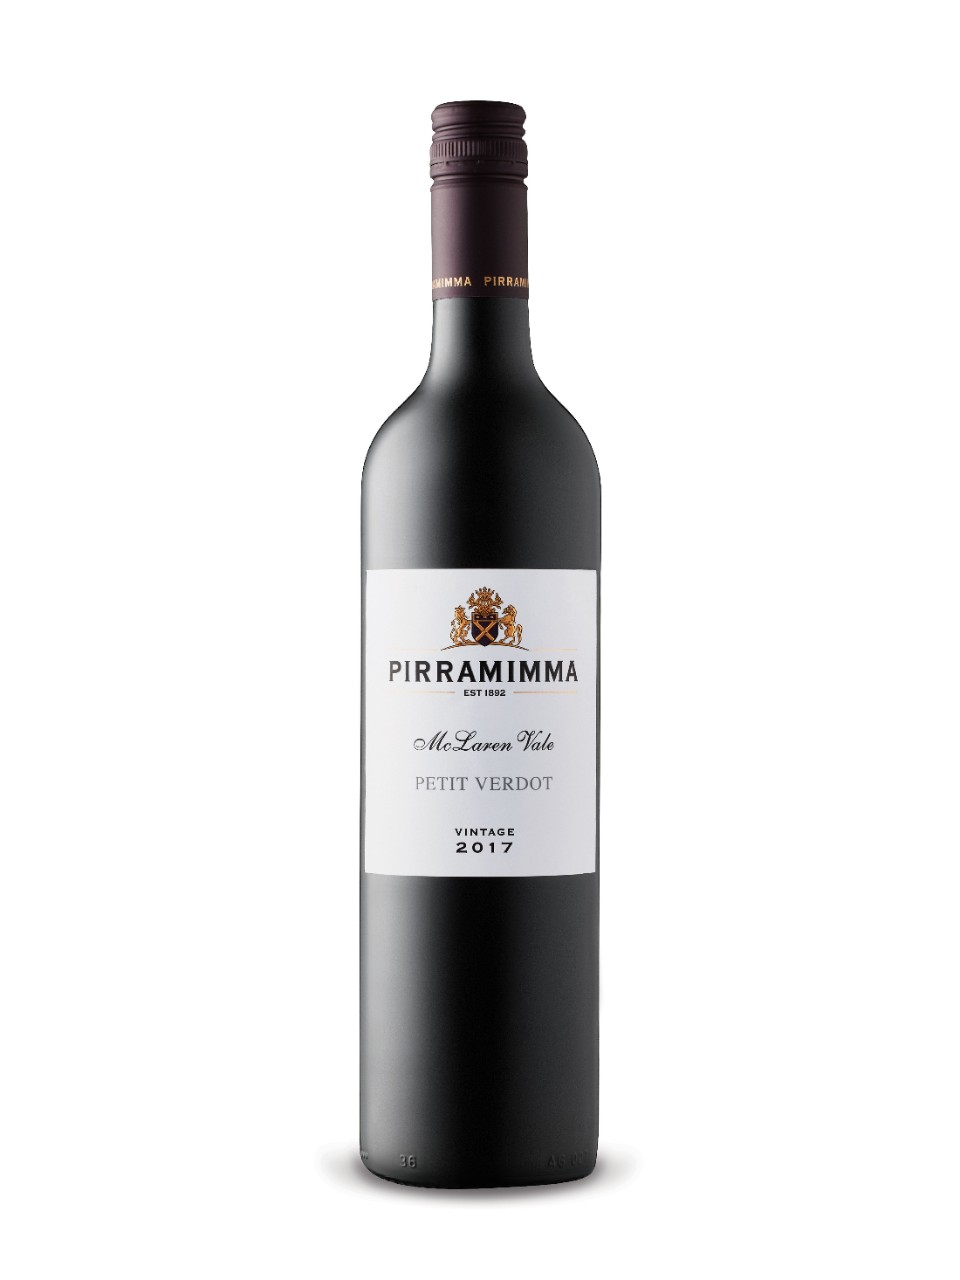 Pirramimma Petit Verdot 2016 from LCBO